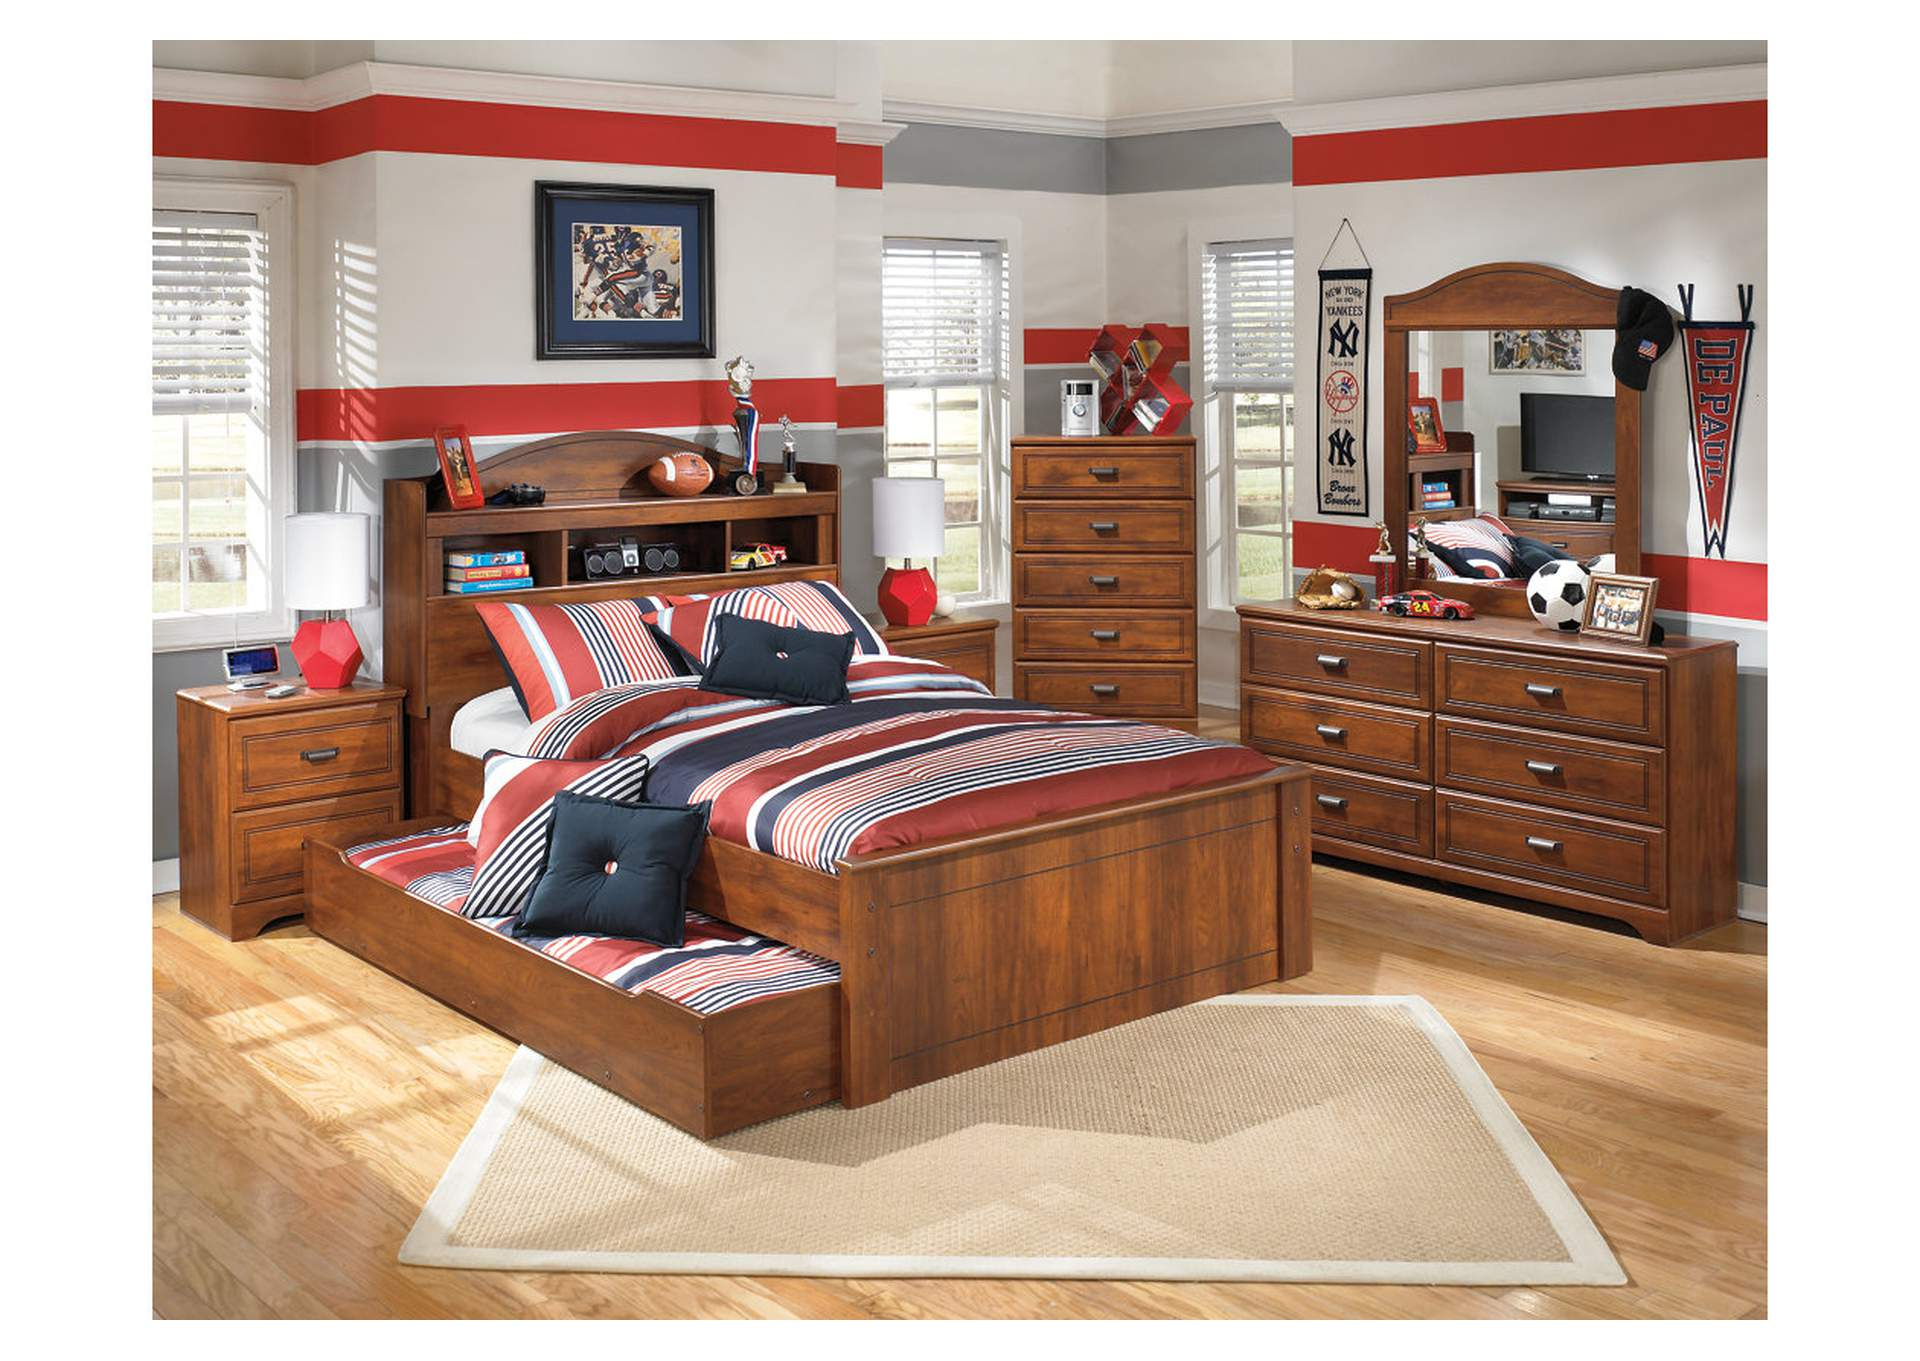 Majek Furniture Barchan Full Bookcase Bed W Trundle